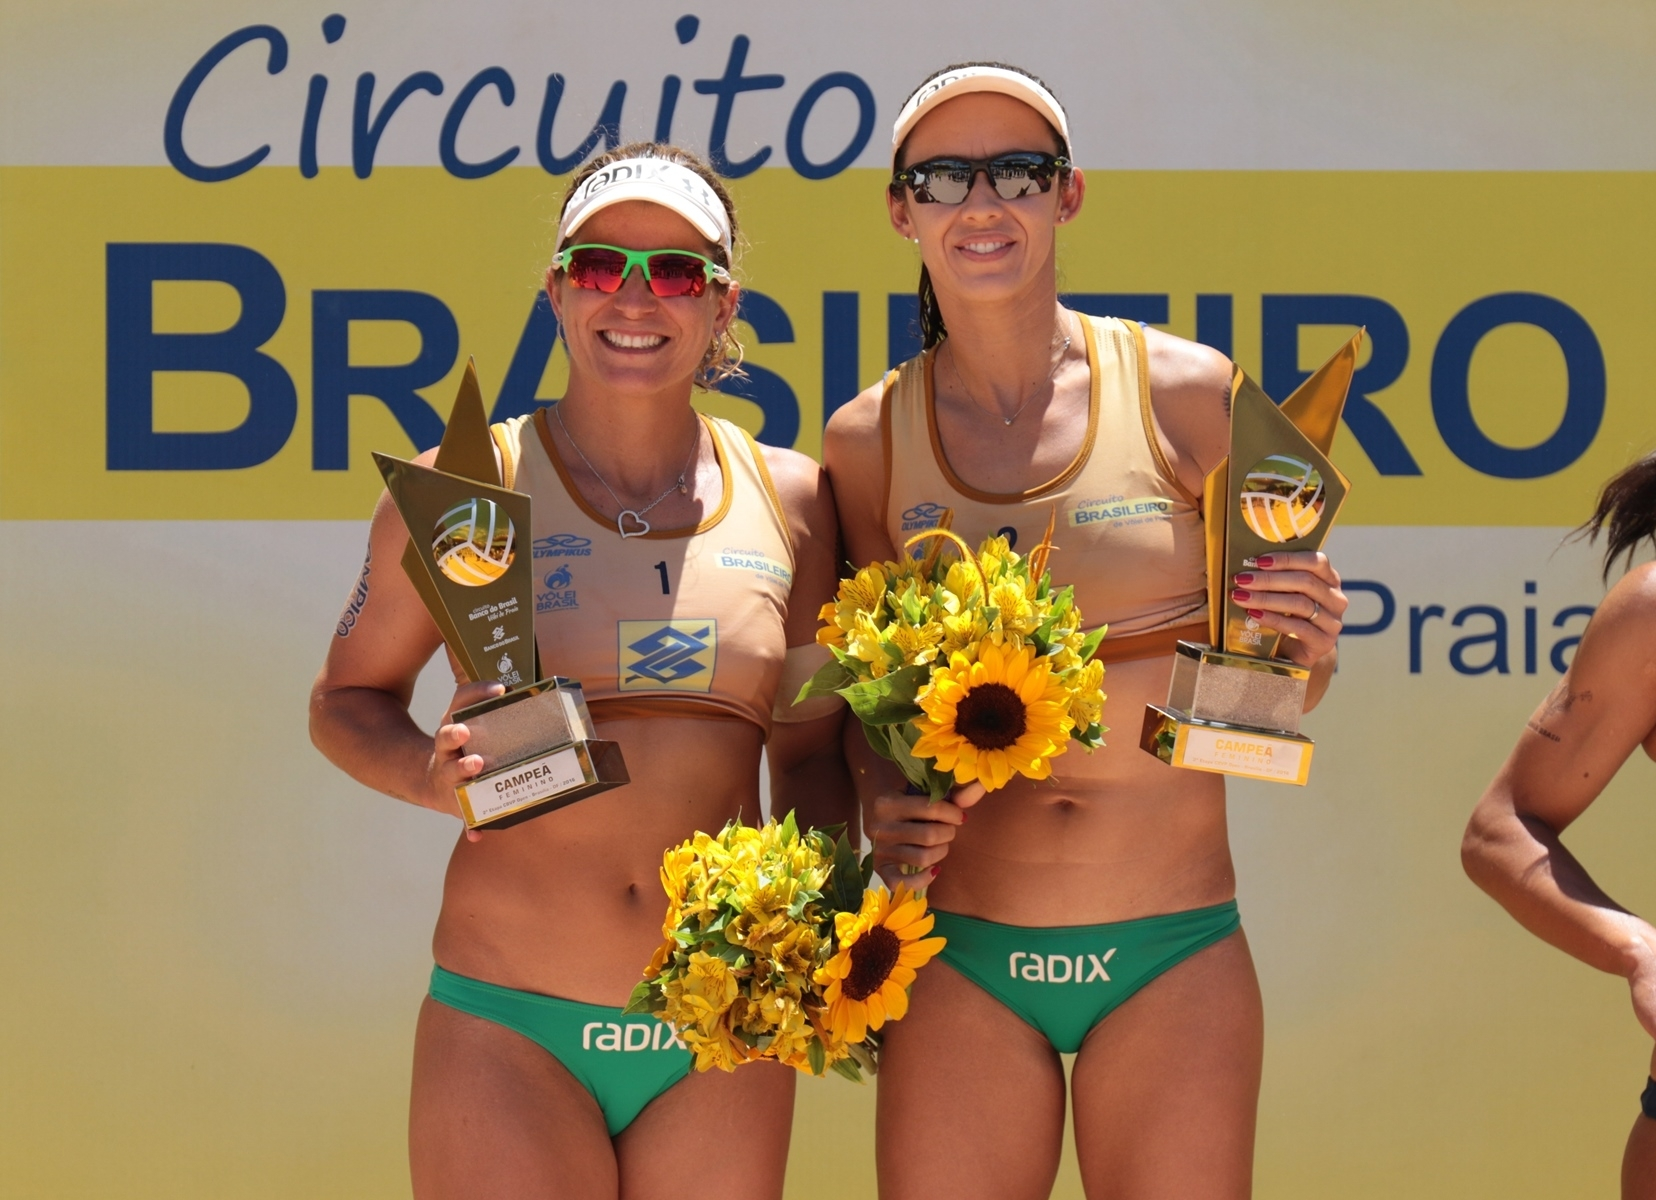 Larissa and Talita pose for photographs after winning the Brasilia competition for the second year running. Photocredit: CBV.